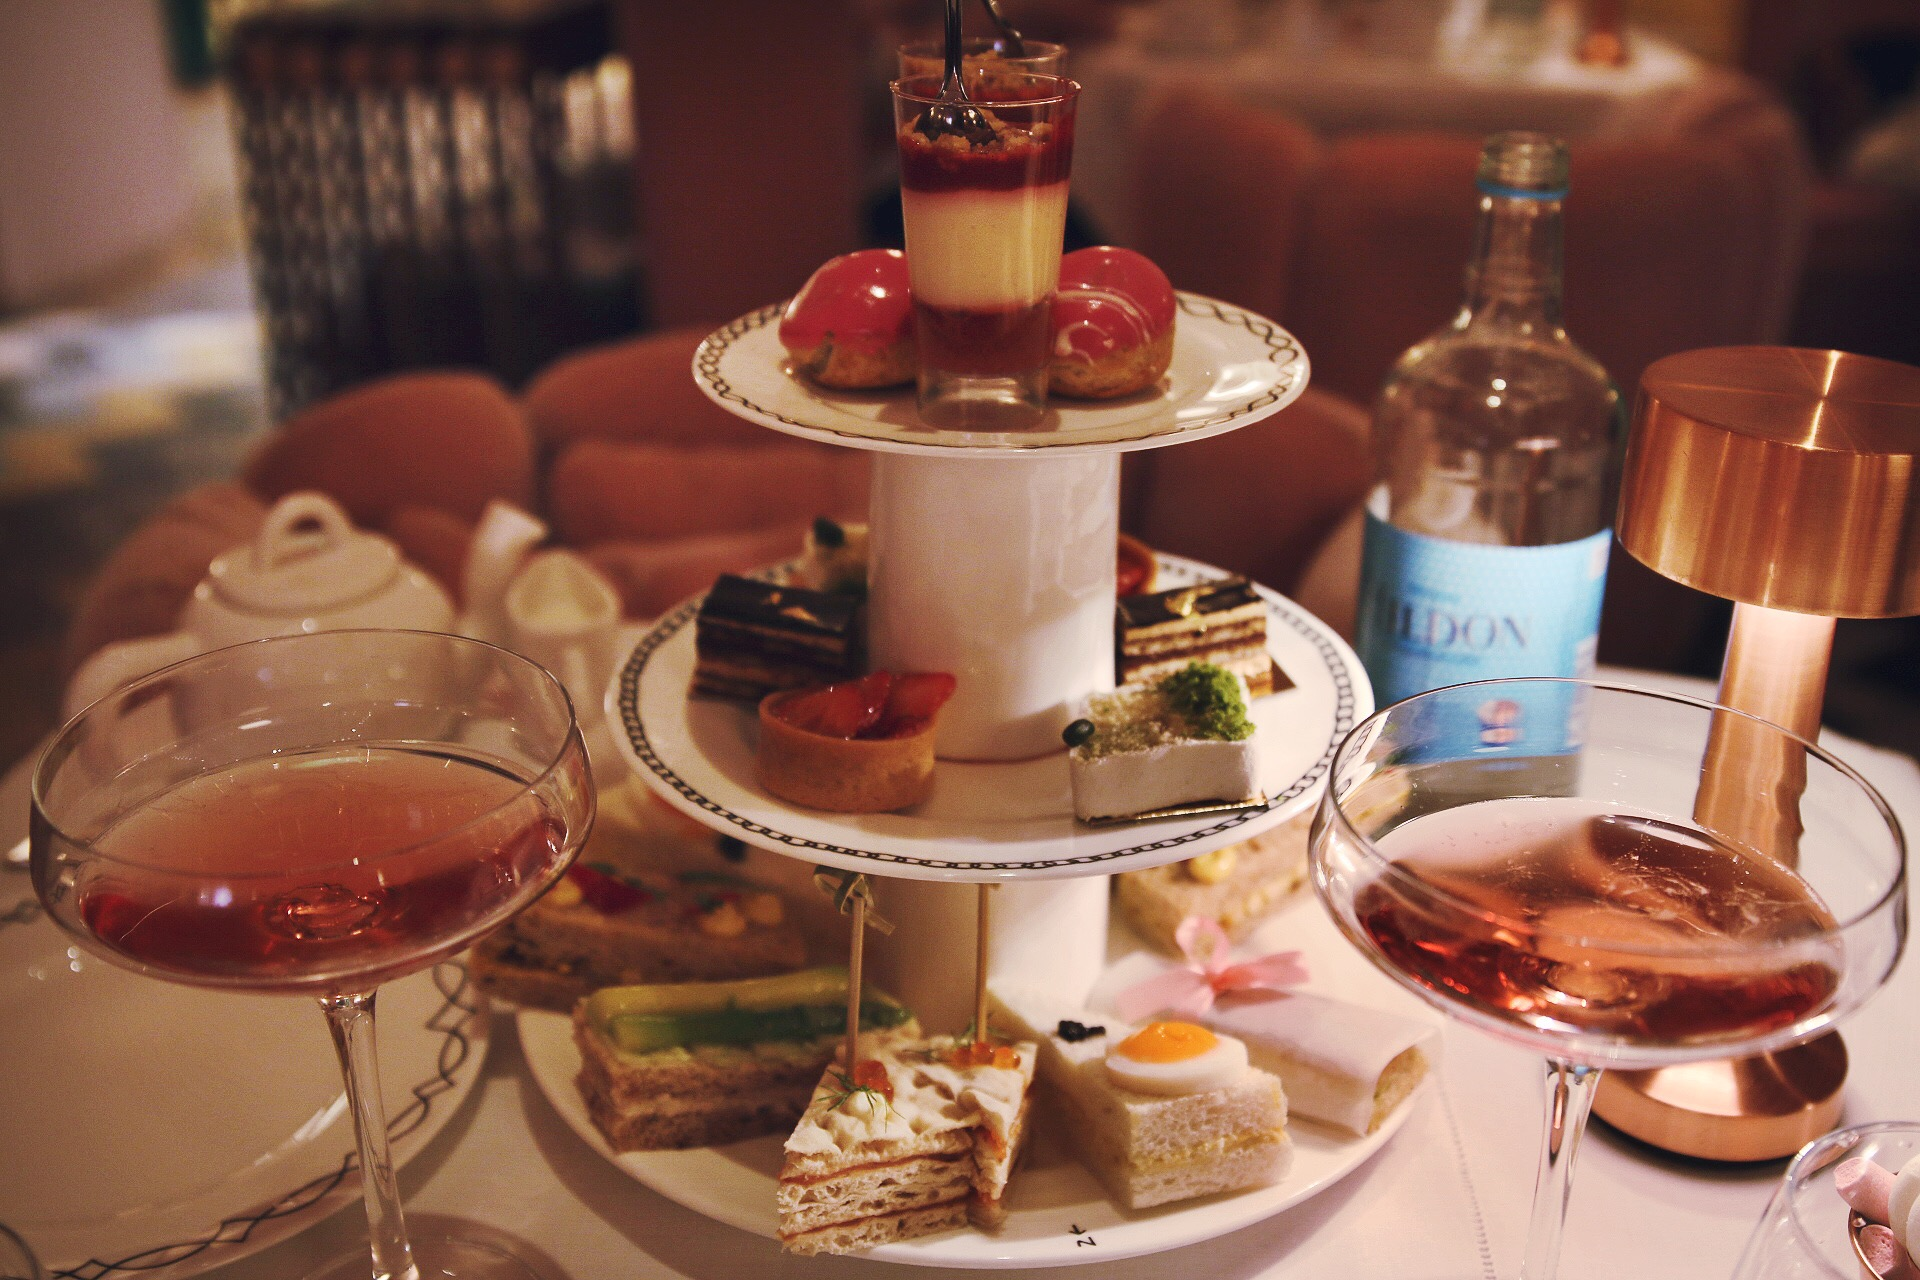 The Champagne Afternoon Tea